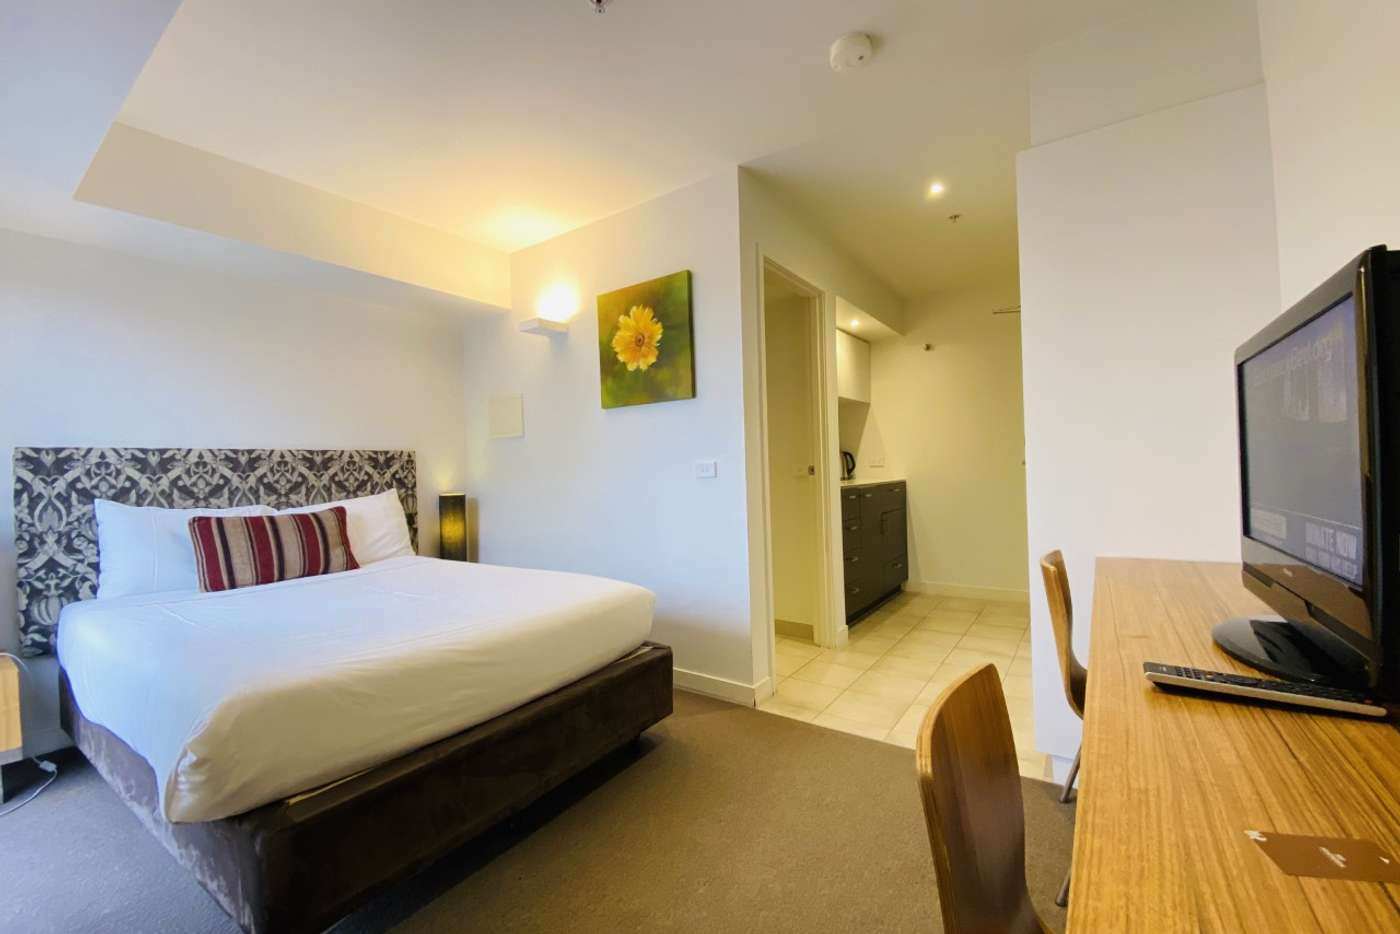 Main view of Homely studio listing, 927/572 St Kilda Road, Melbourne VIC 3004